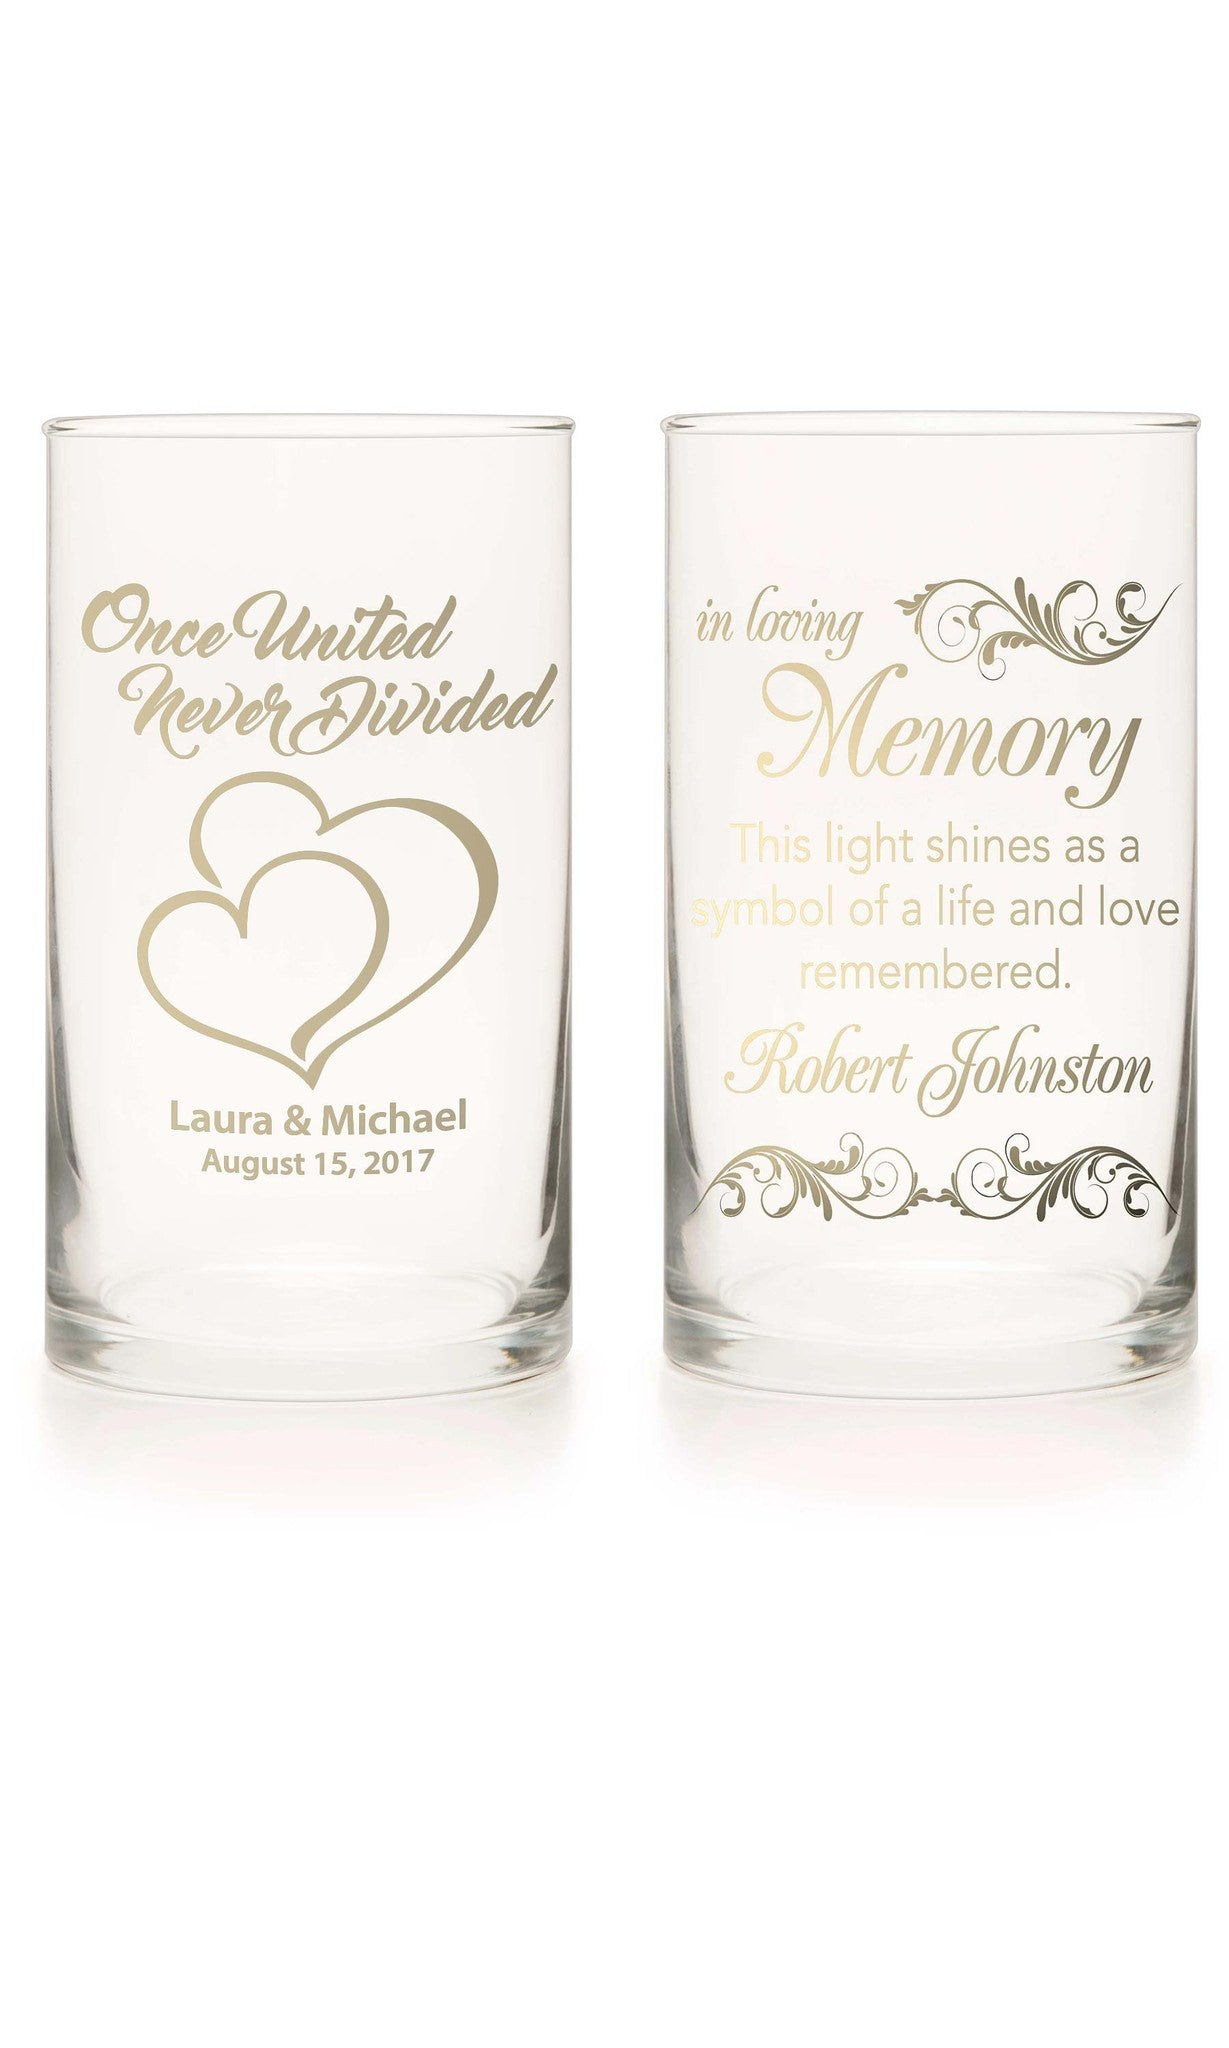 Unity Candle & Memorial Candle Set - WeddingCandles.com